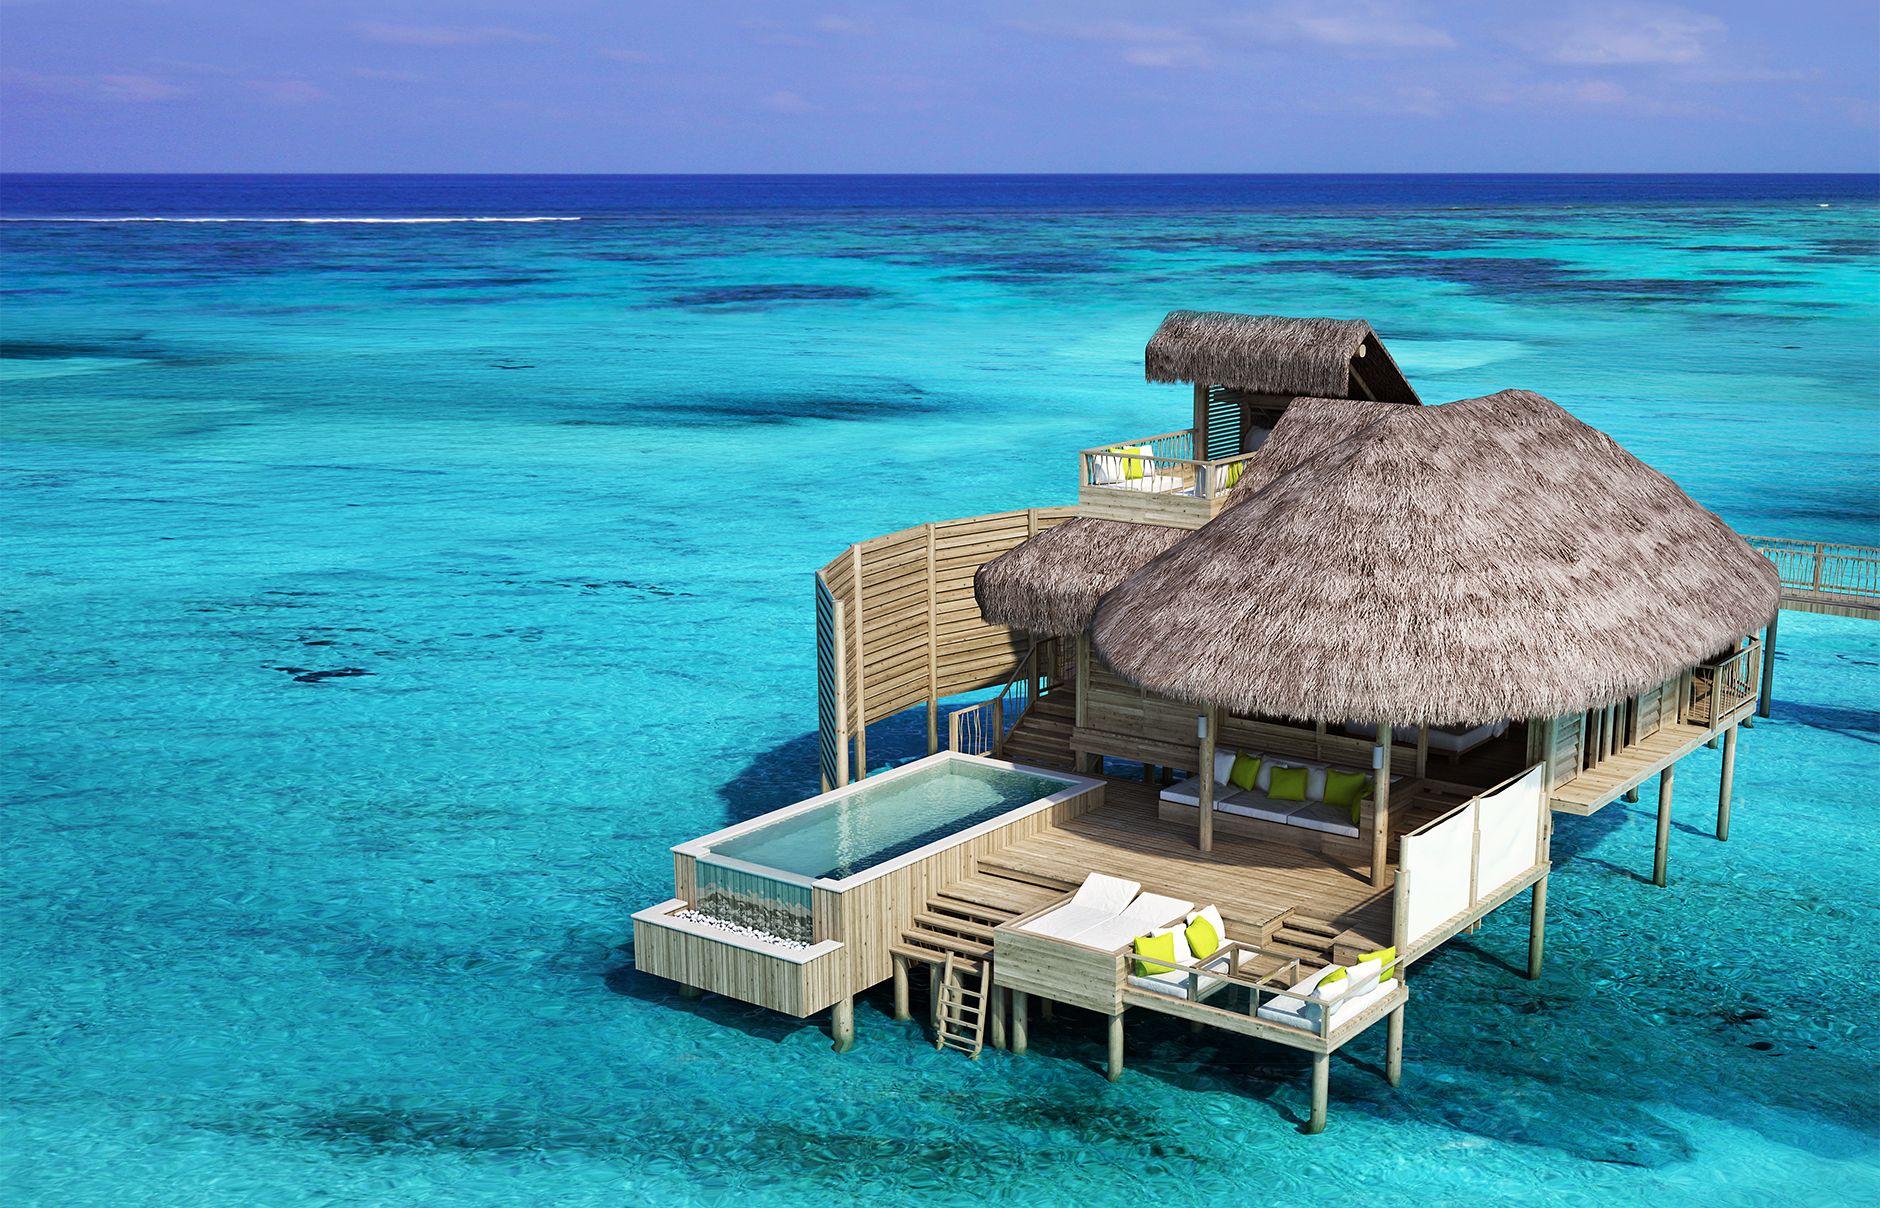 Luxury Holiday Villa With Pool The Top 15 Luxury Resorts In The Maldives Luxury Hotels